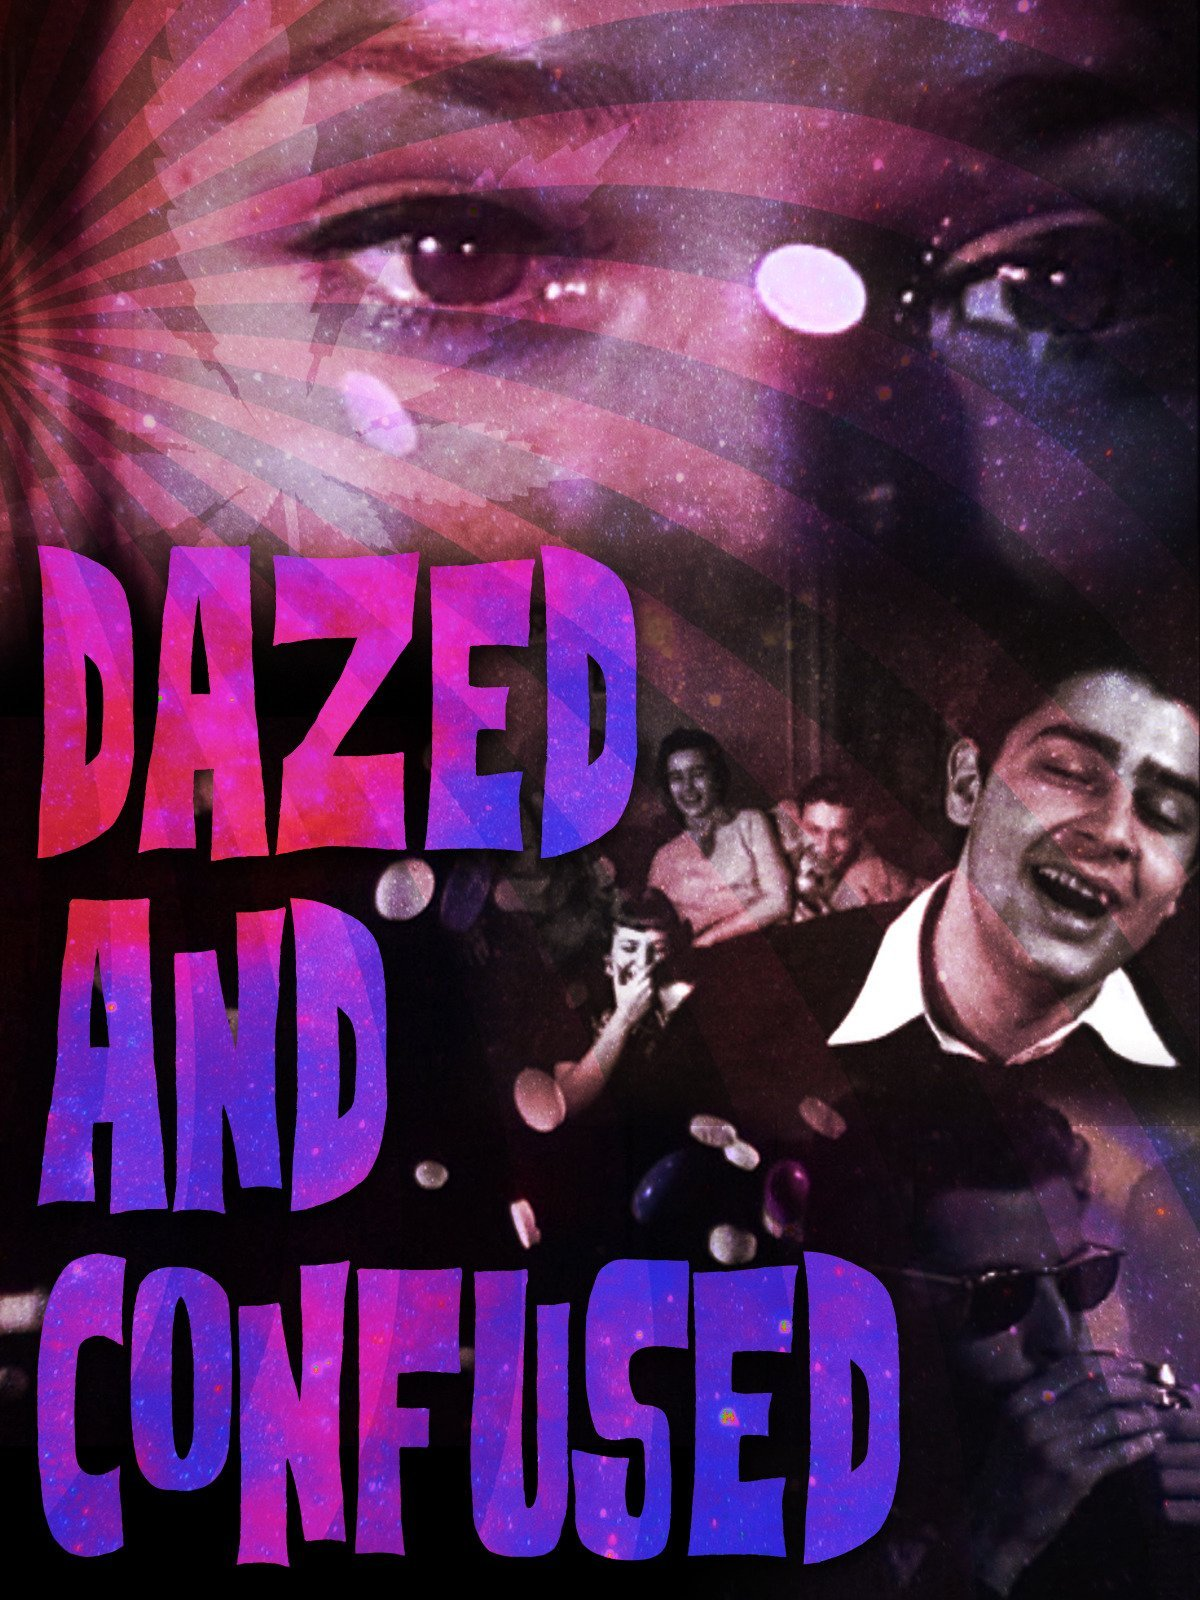 Dazed And Confused! - Classic Drug Scare Films from Your Youth on Amazon Prime Video UK